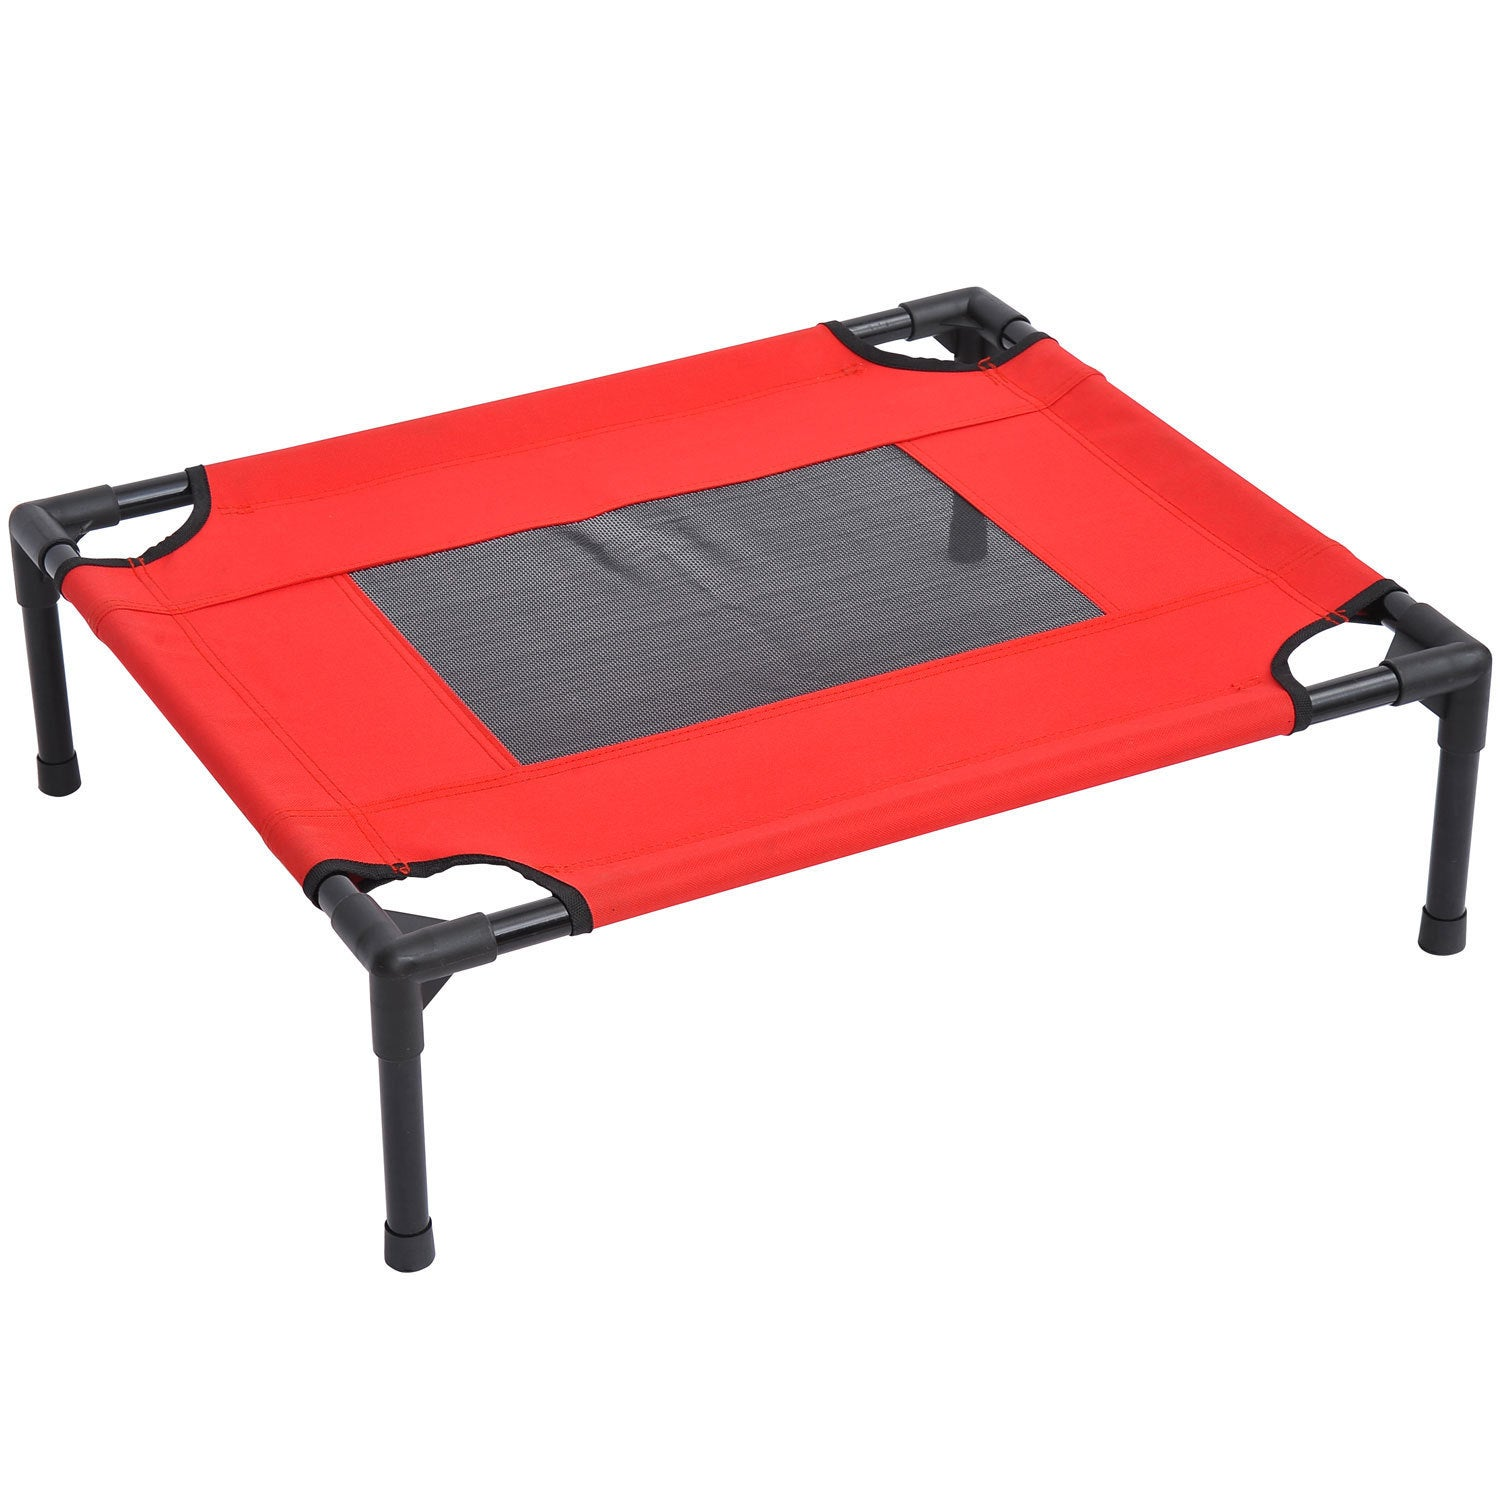 Aosom Pawhut Indoor/Outdoor Elevated Dog Bed (Red)